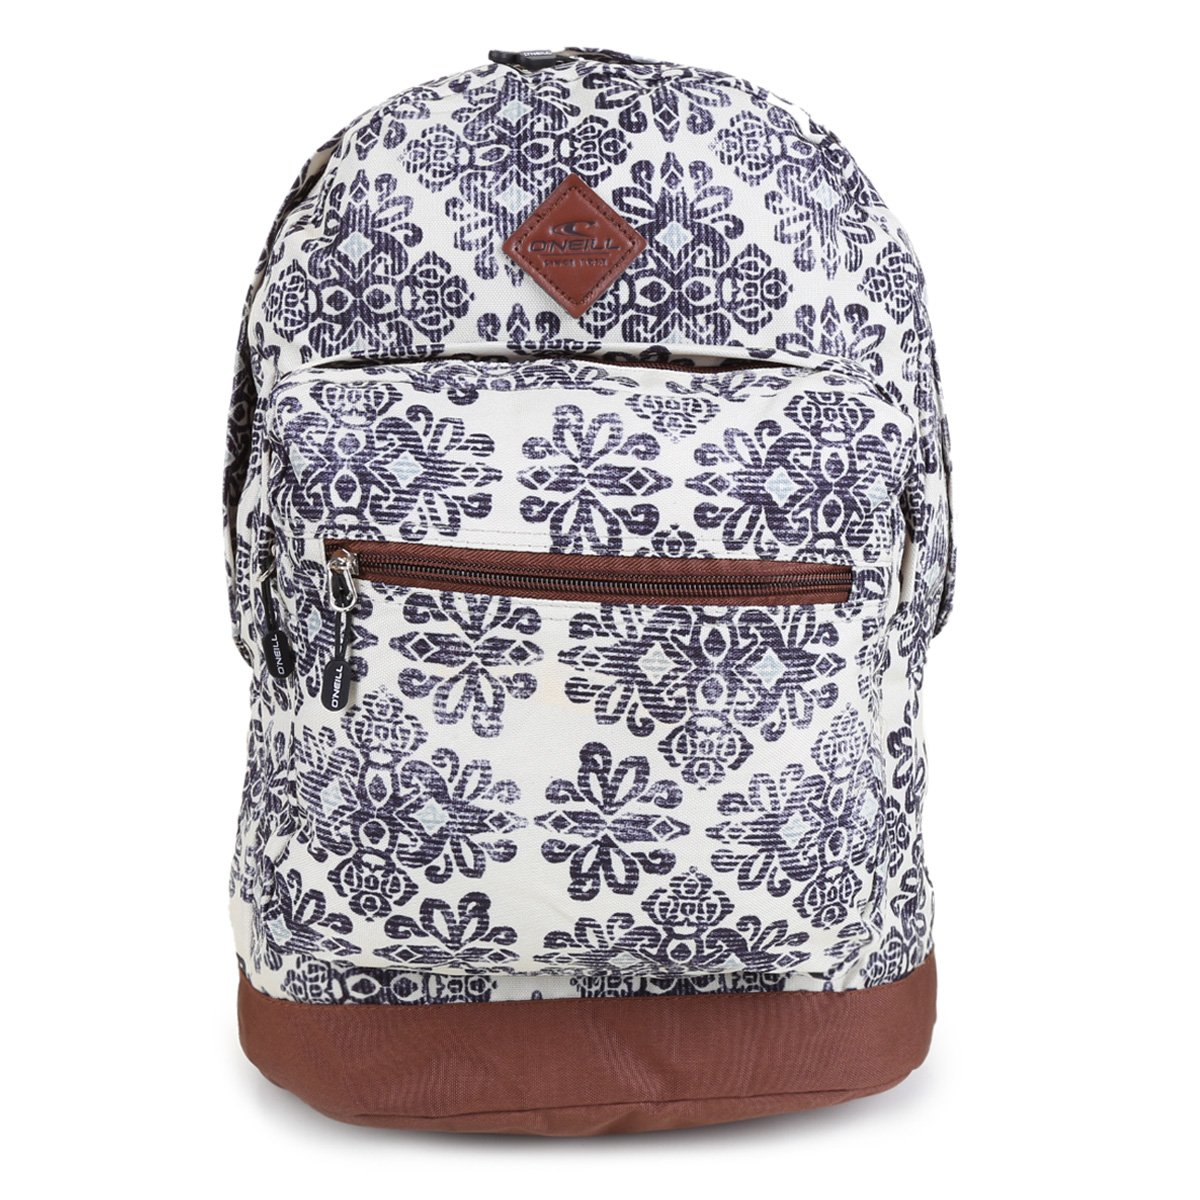 Mochila O'Neill Plus Queen